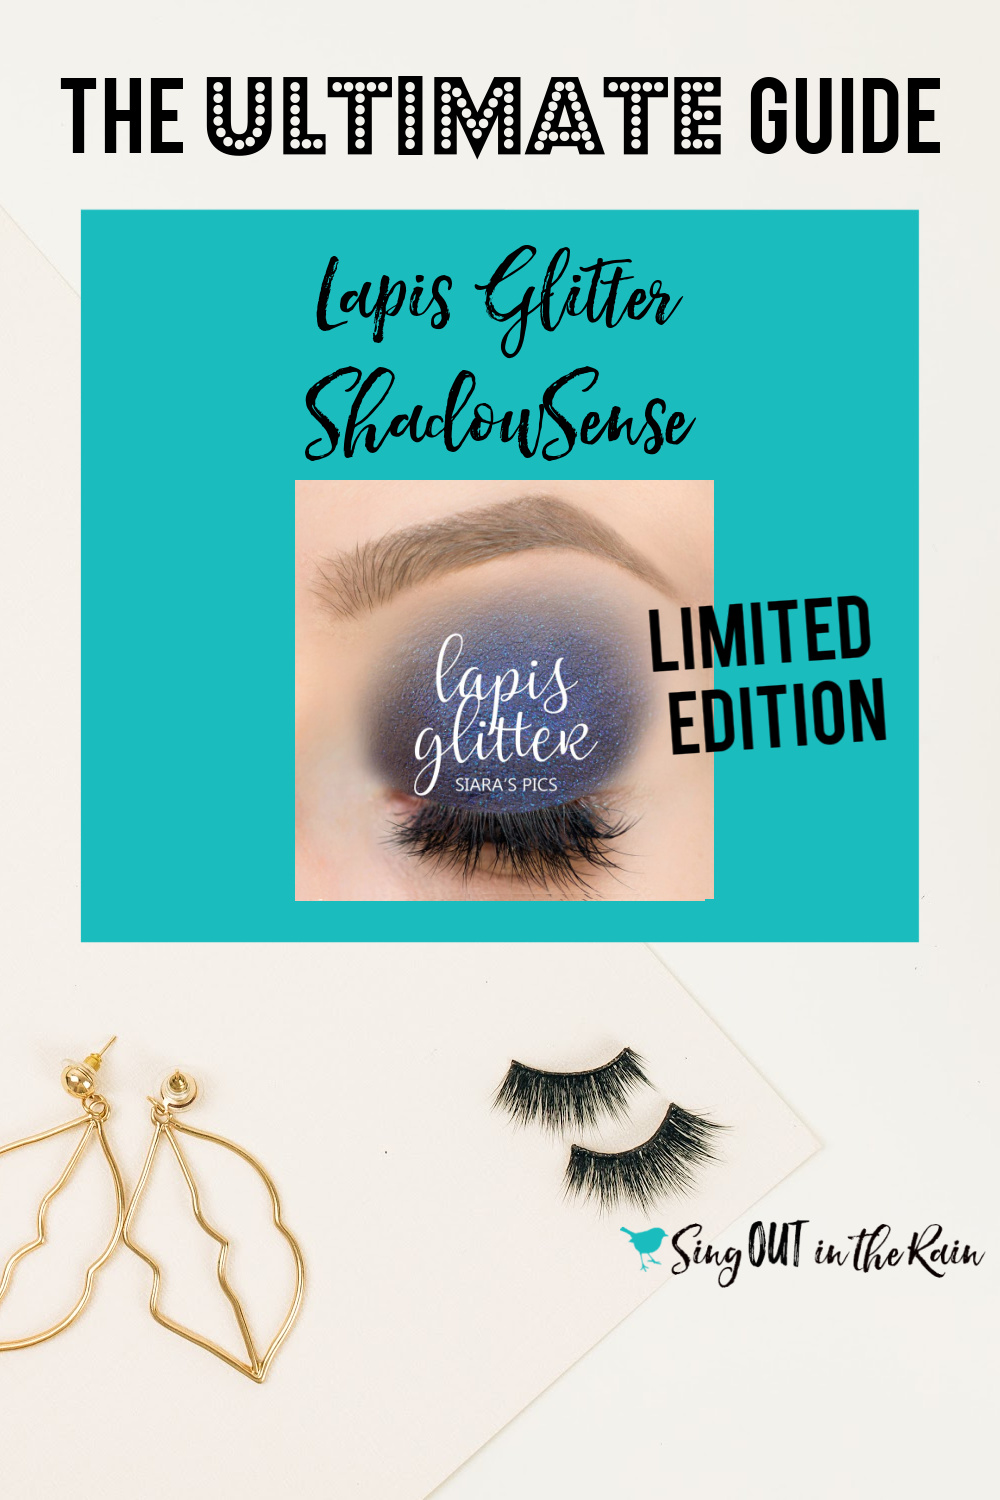 The Ultimate Guide to Lapis Glitter ShadowSense